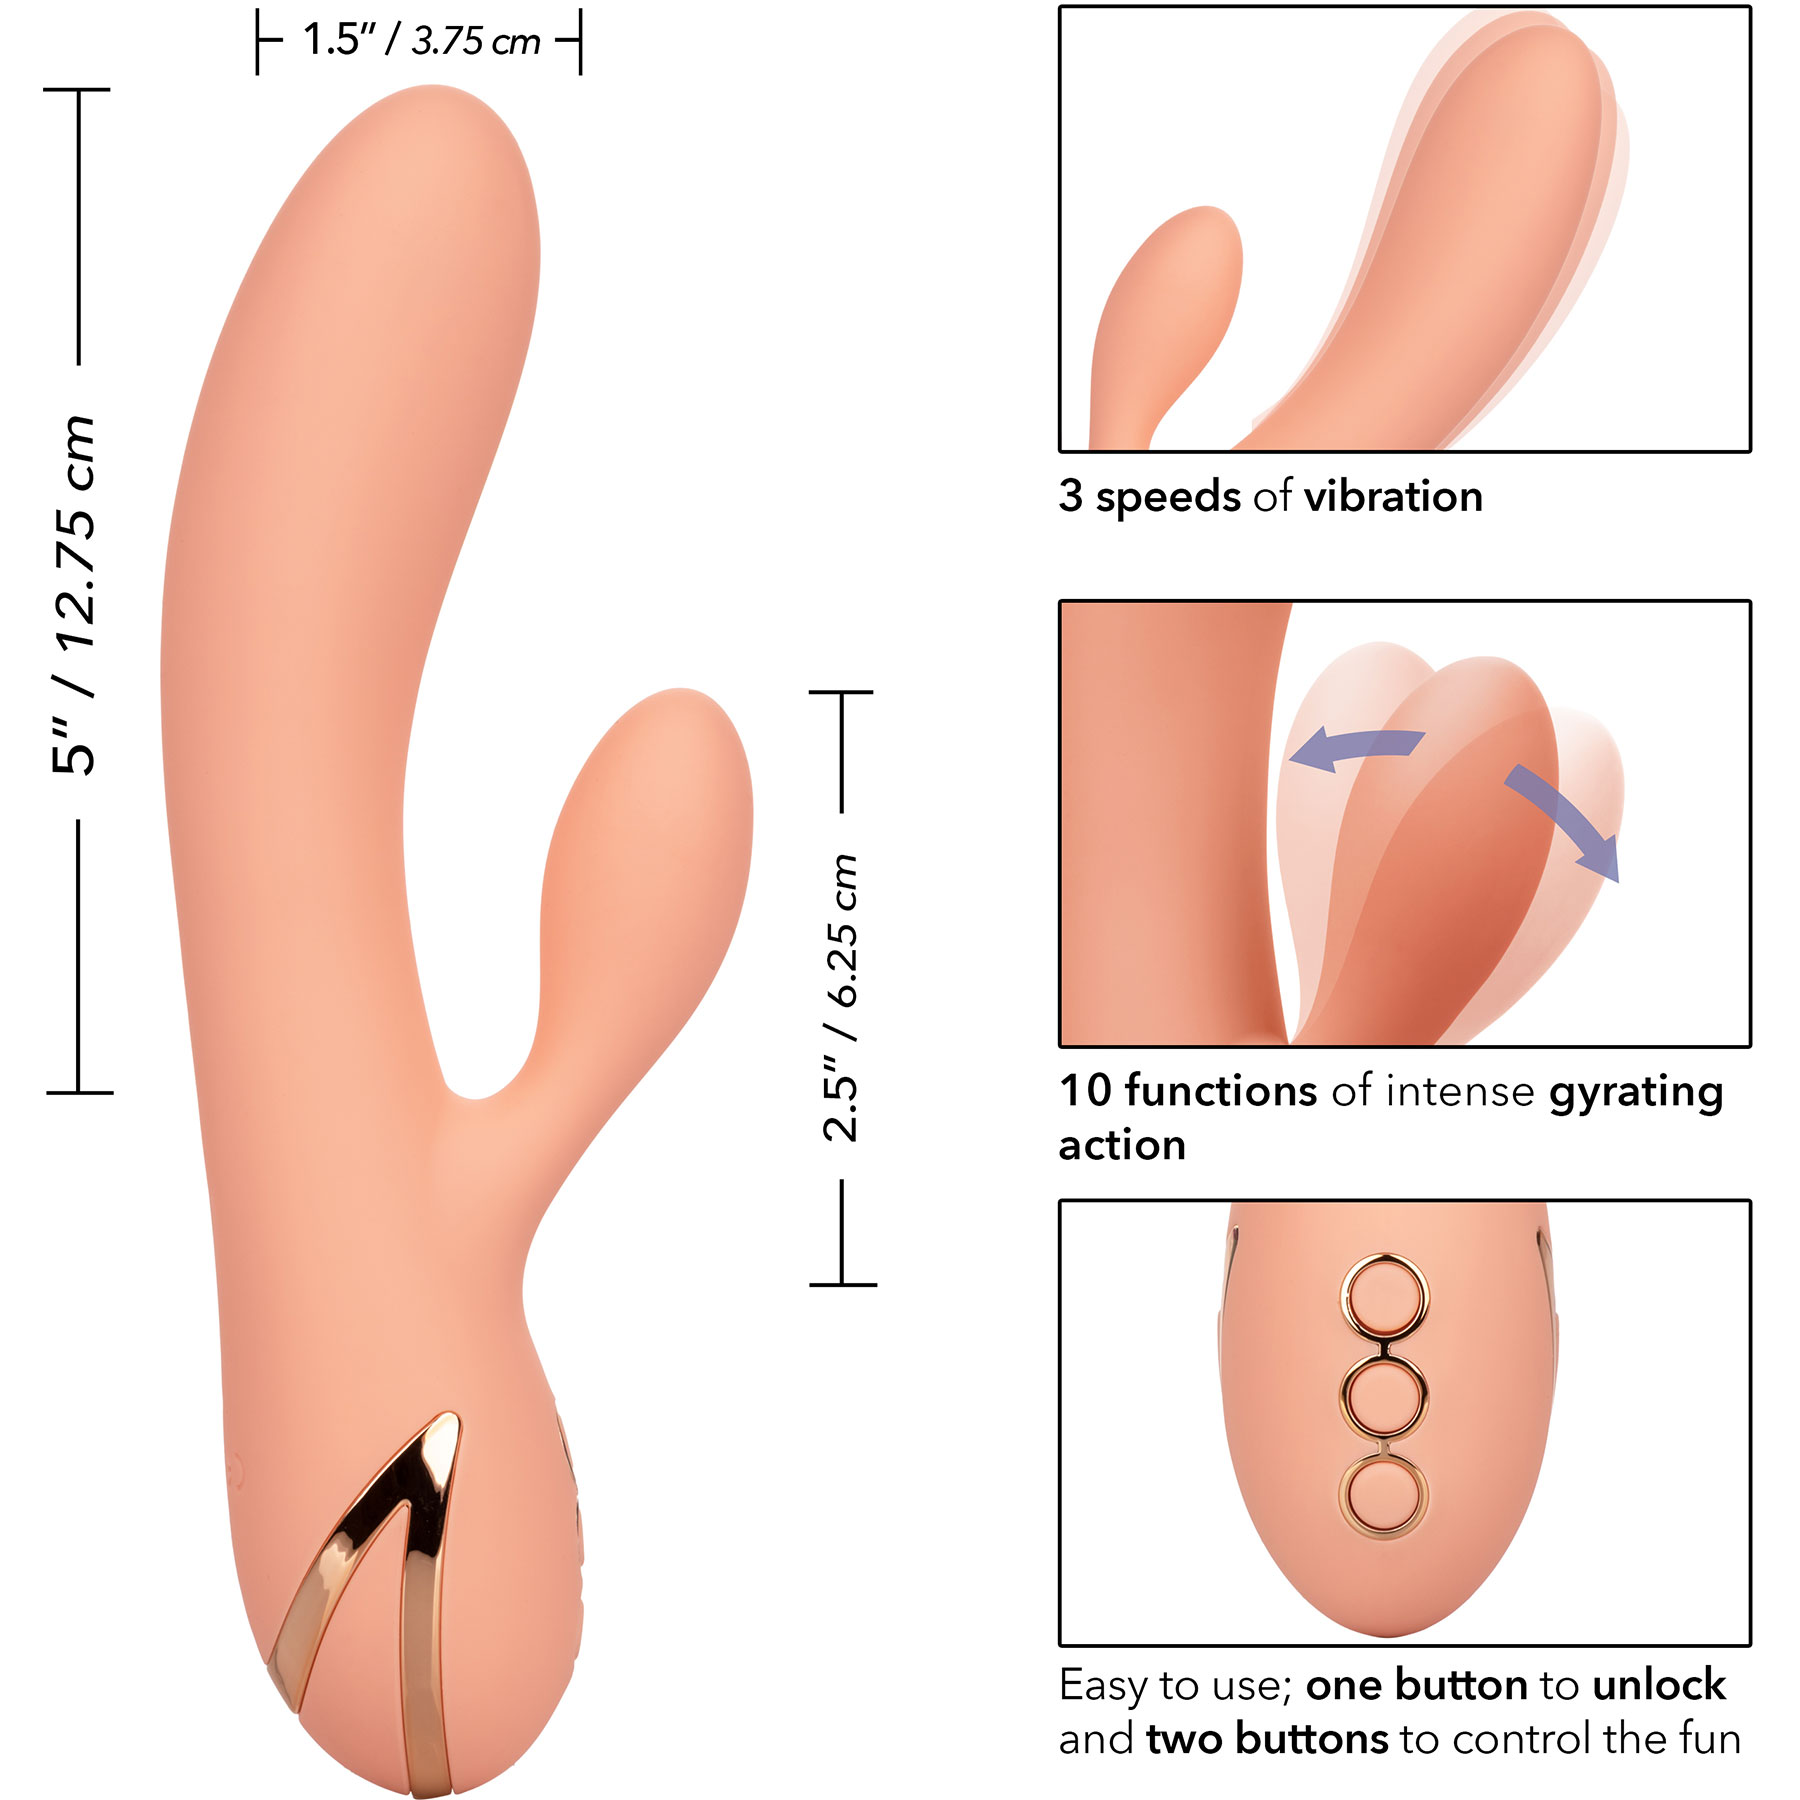 California Dreaming Monterey Magic Rabbit Style Silicone Vibrator - Measurements